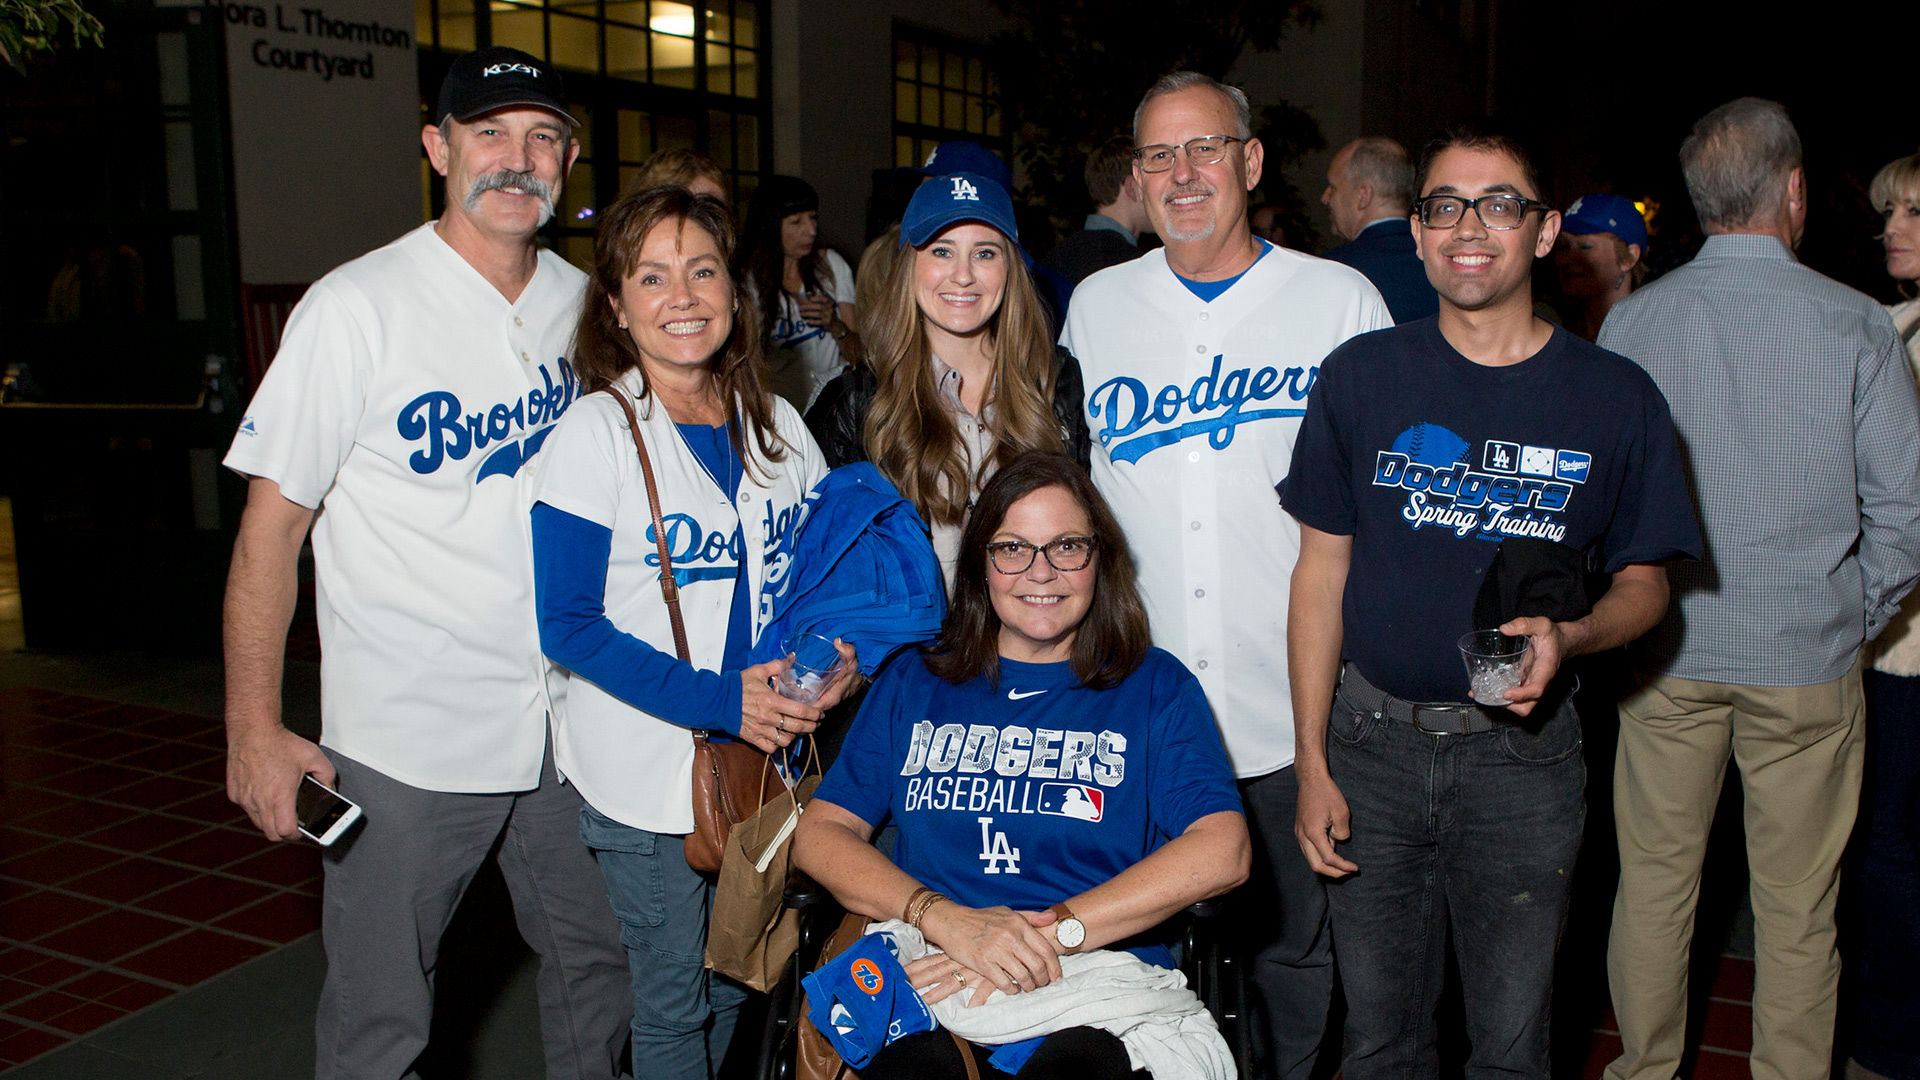 Longtime Dodgers fan, Scott Bell, and guests enjoy the reception after the screening at the Los Angeles Central Library on November 23, 2019.